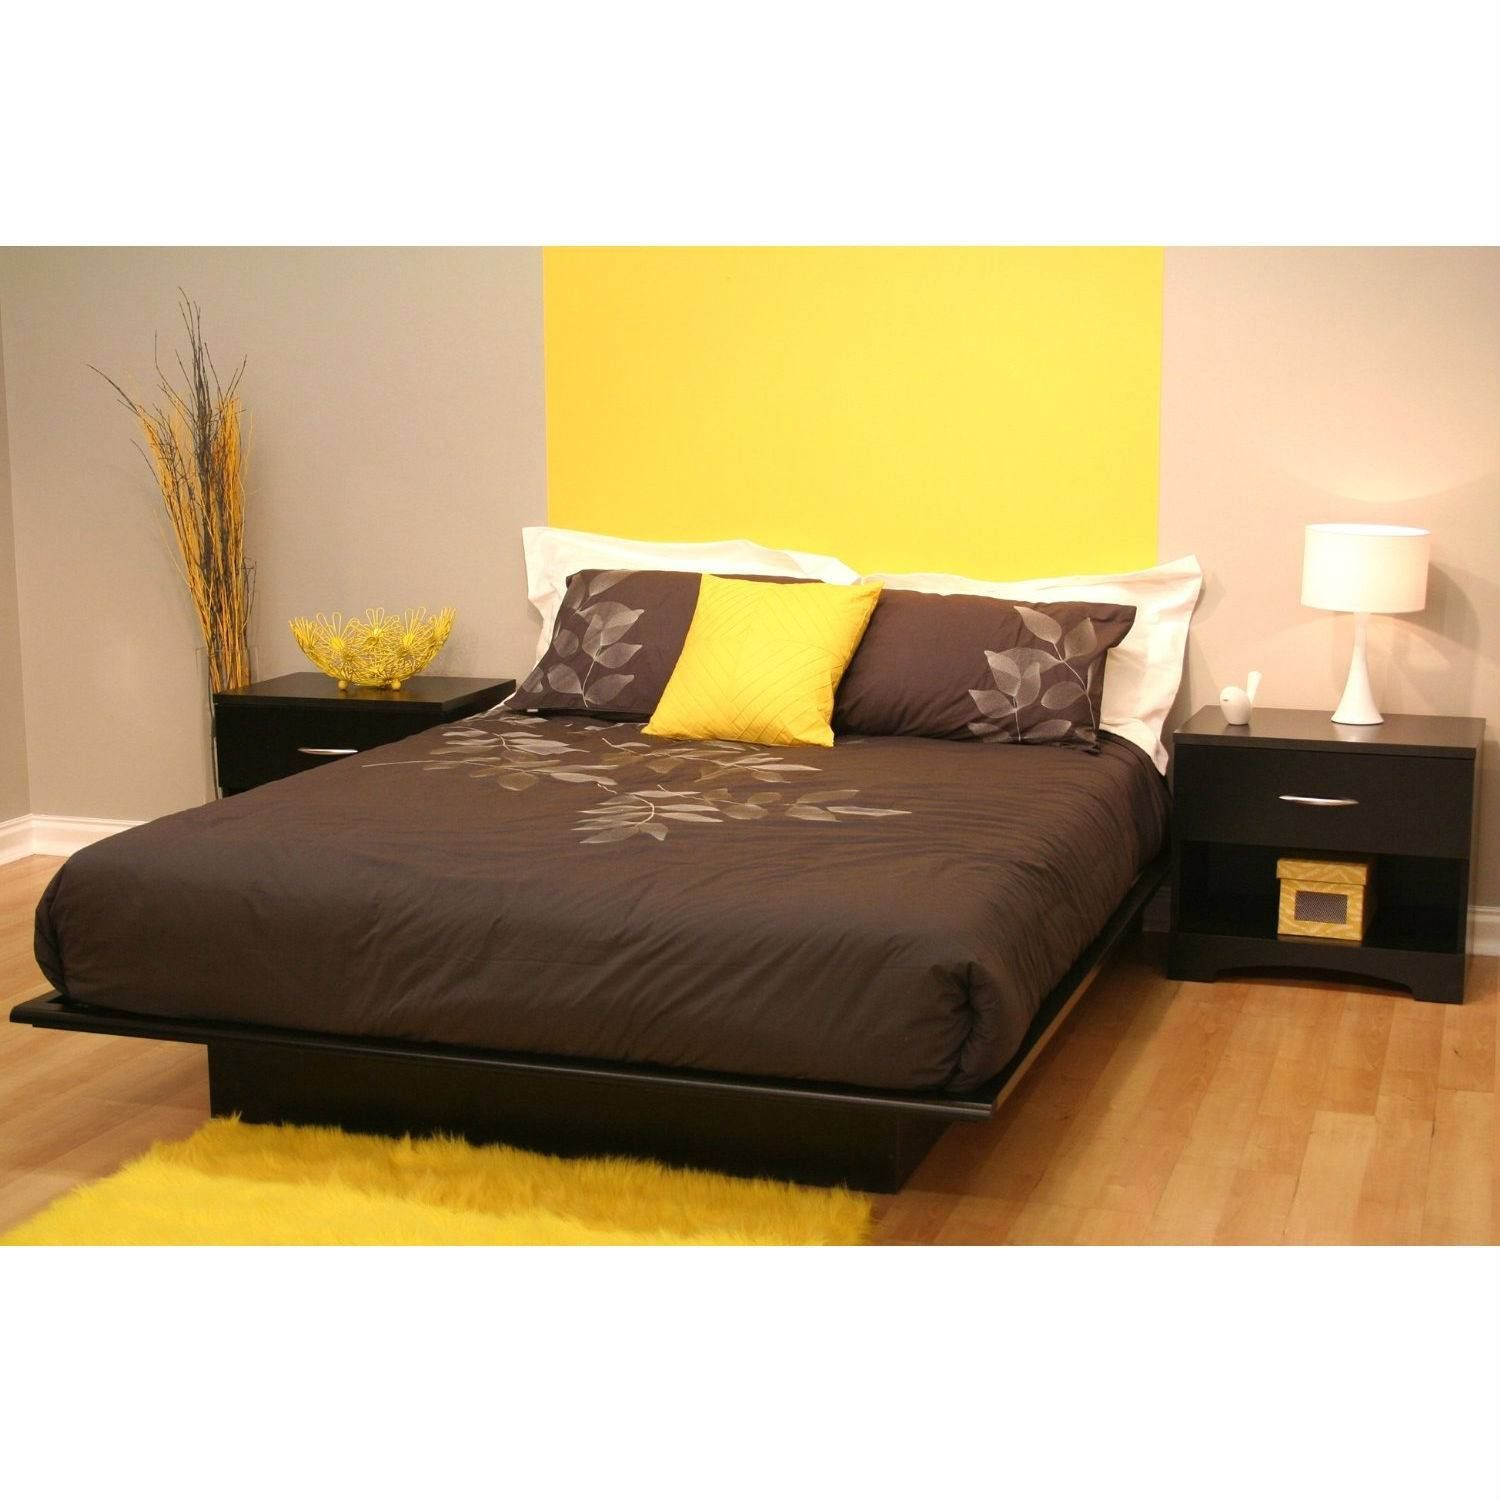 Queen size Modern Platform Bed Frame in